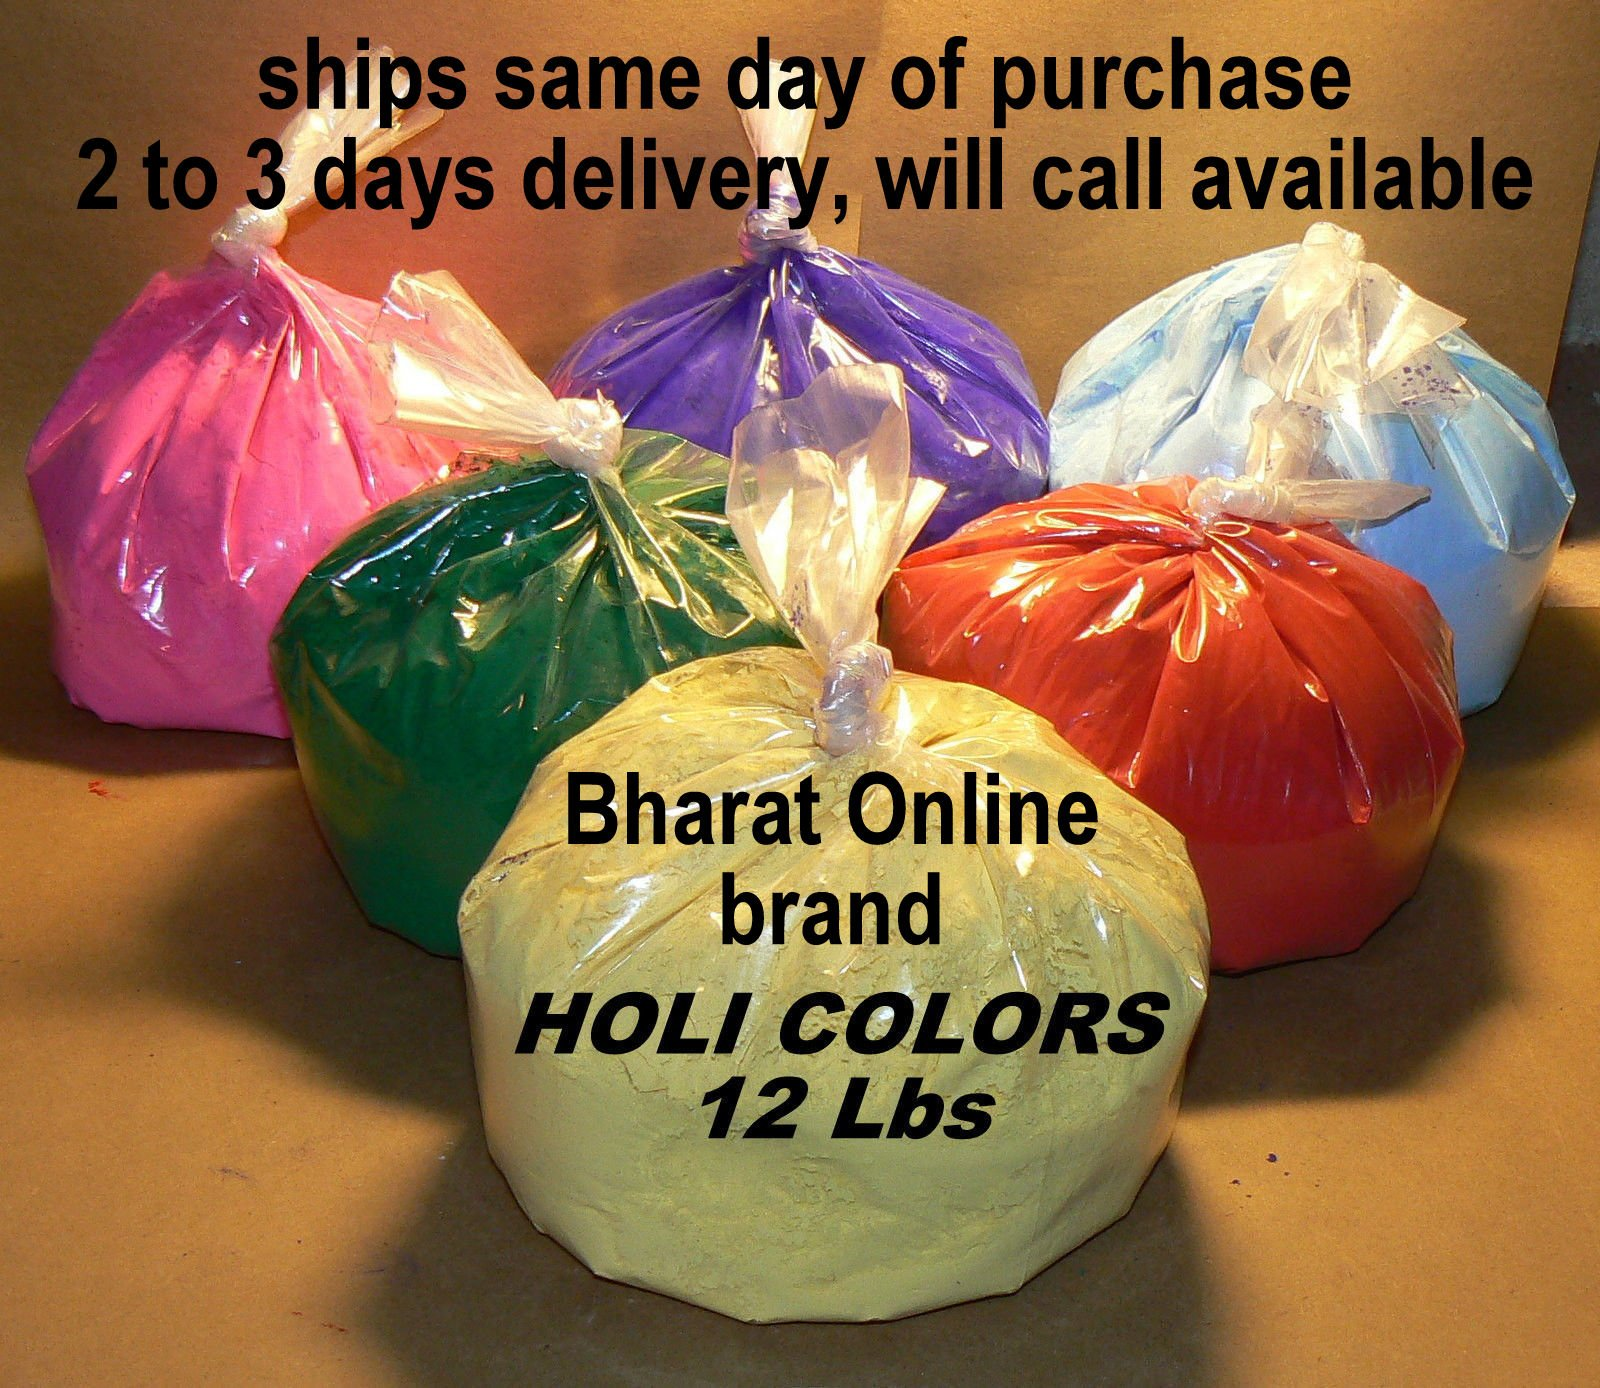 Gaura Purnima/Holi HOLI Colors 12 Lbs 6 colors bharat online brand only avalable from this store (2lbs ea color) Green, Violet , Pink, Red, Blue, and Yellow- SAME DAY SHIPPING